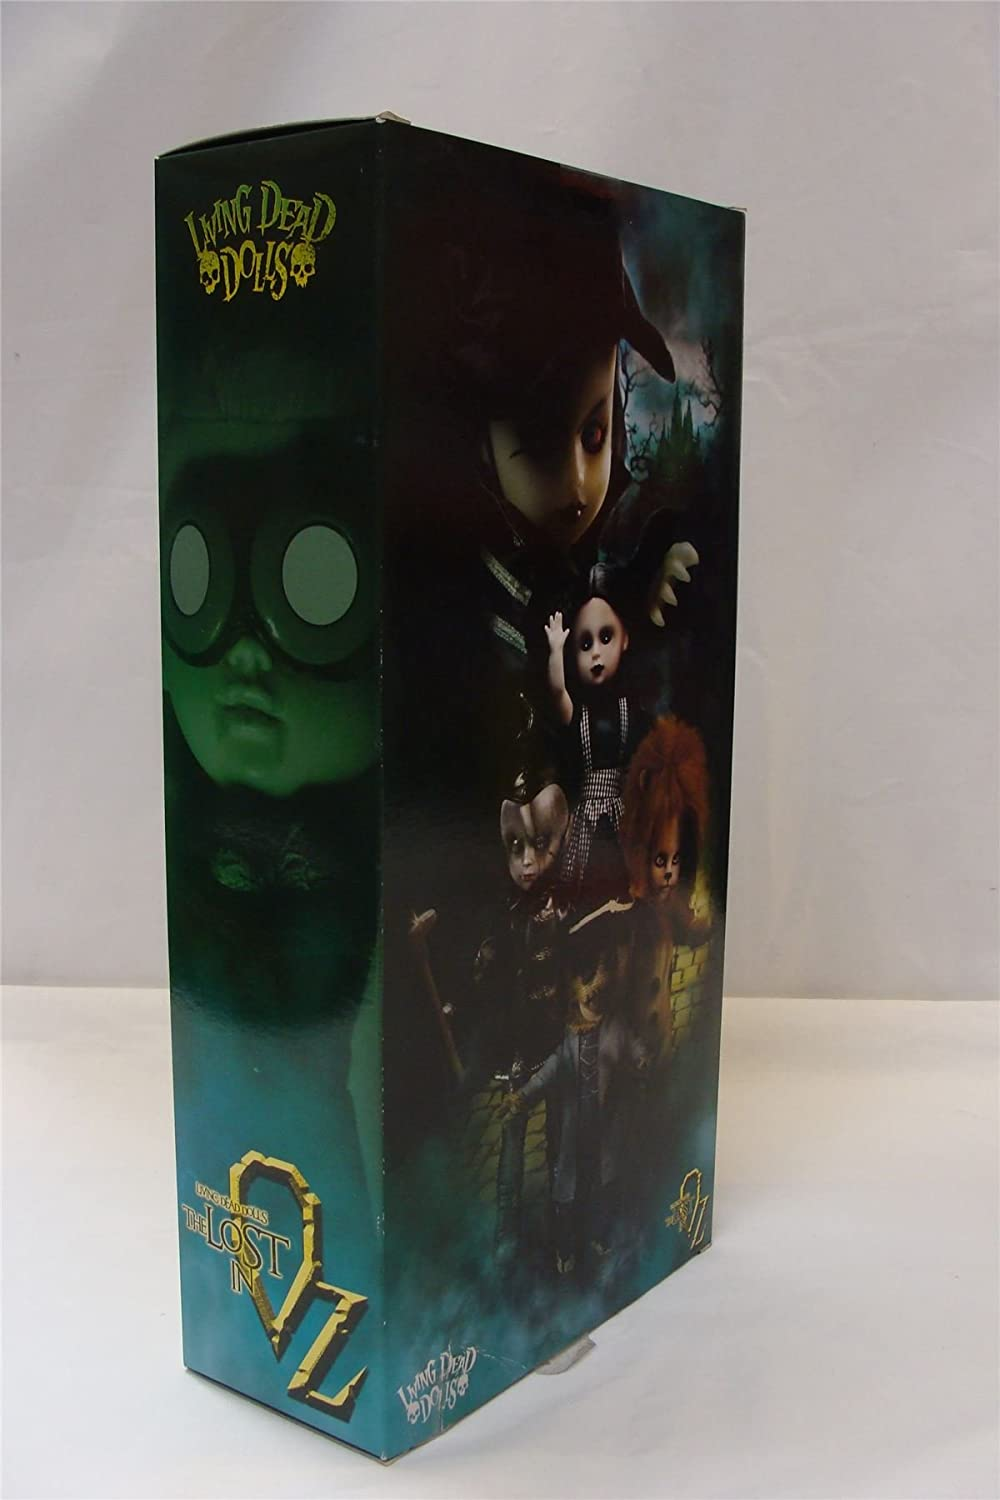 Living Dead Dolls The Lost In OZ Exclusive Emerald City Variant Purdy as The Scarecrow Variant Mezco Toyz SG/_B019IW80C0/_US